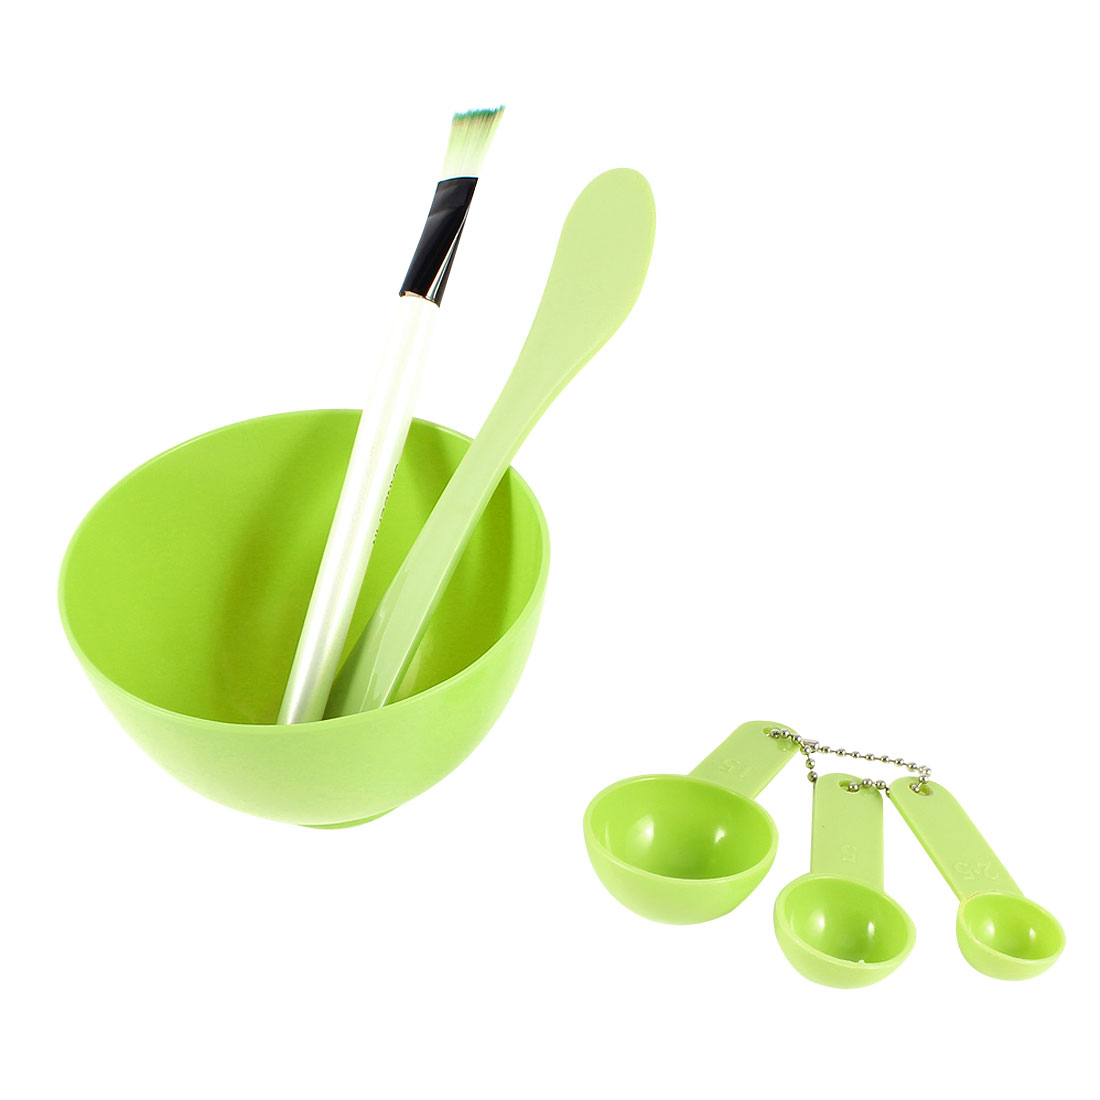 Grass Green 4 in 1 DIY Facial Mask Bowl Brush Stick Measuring Spoon